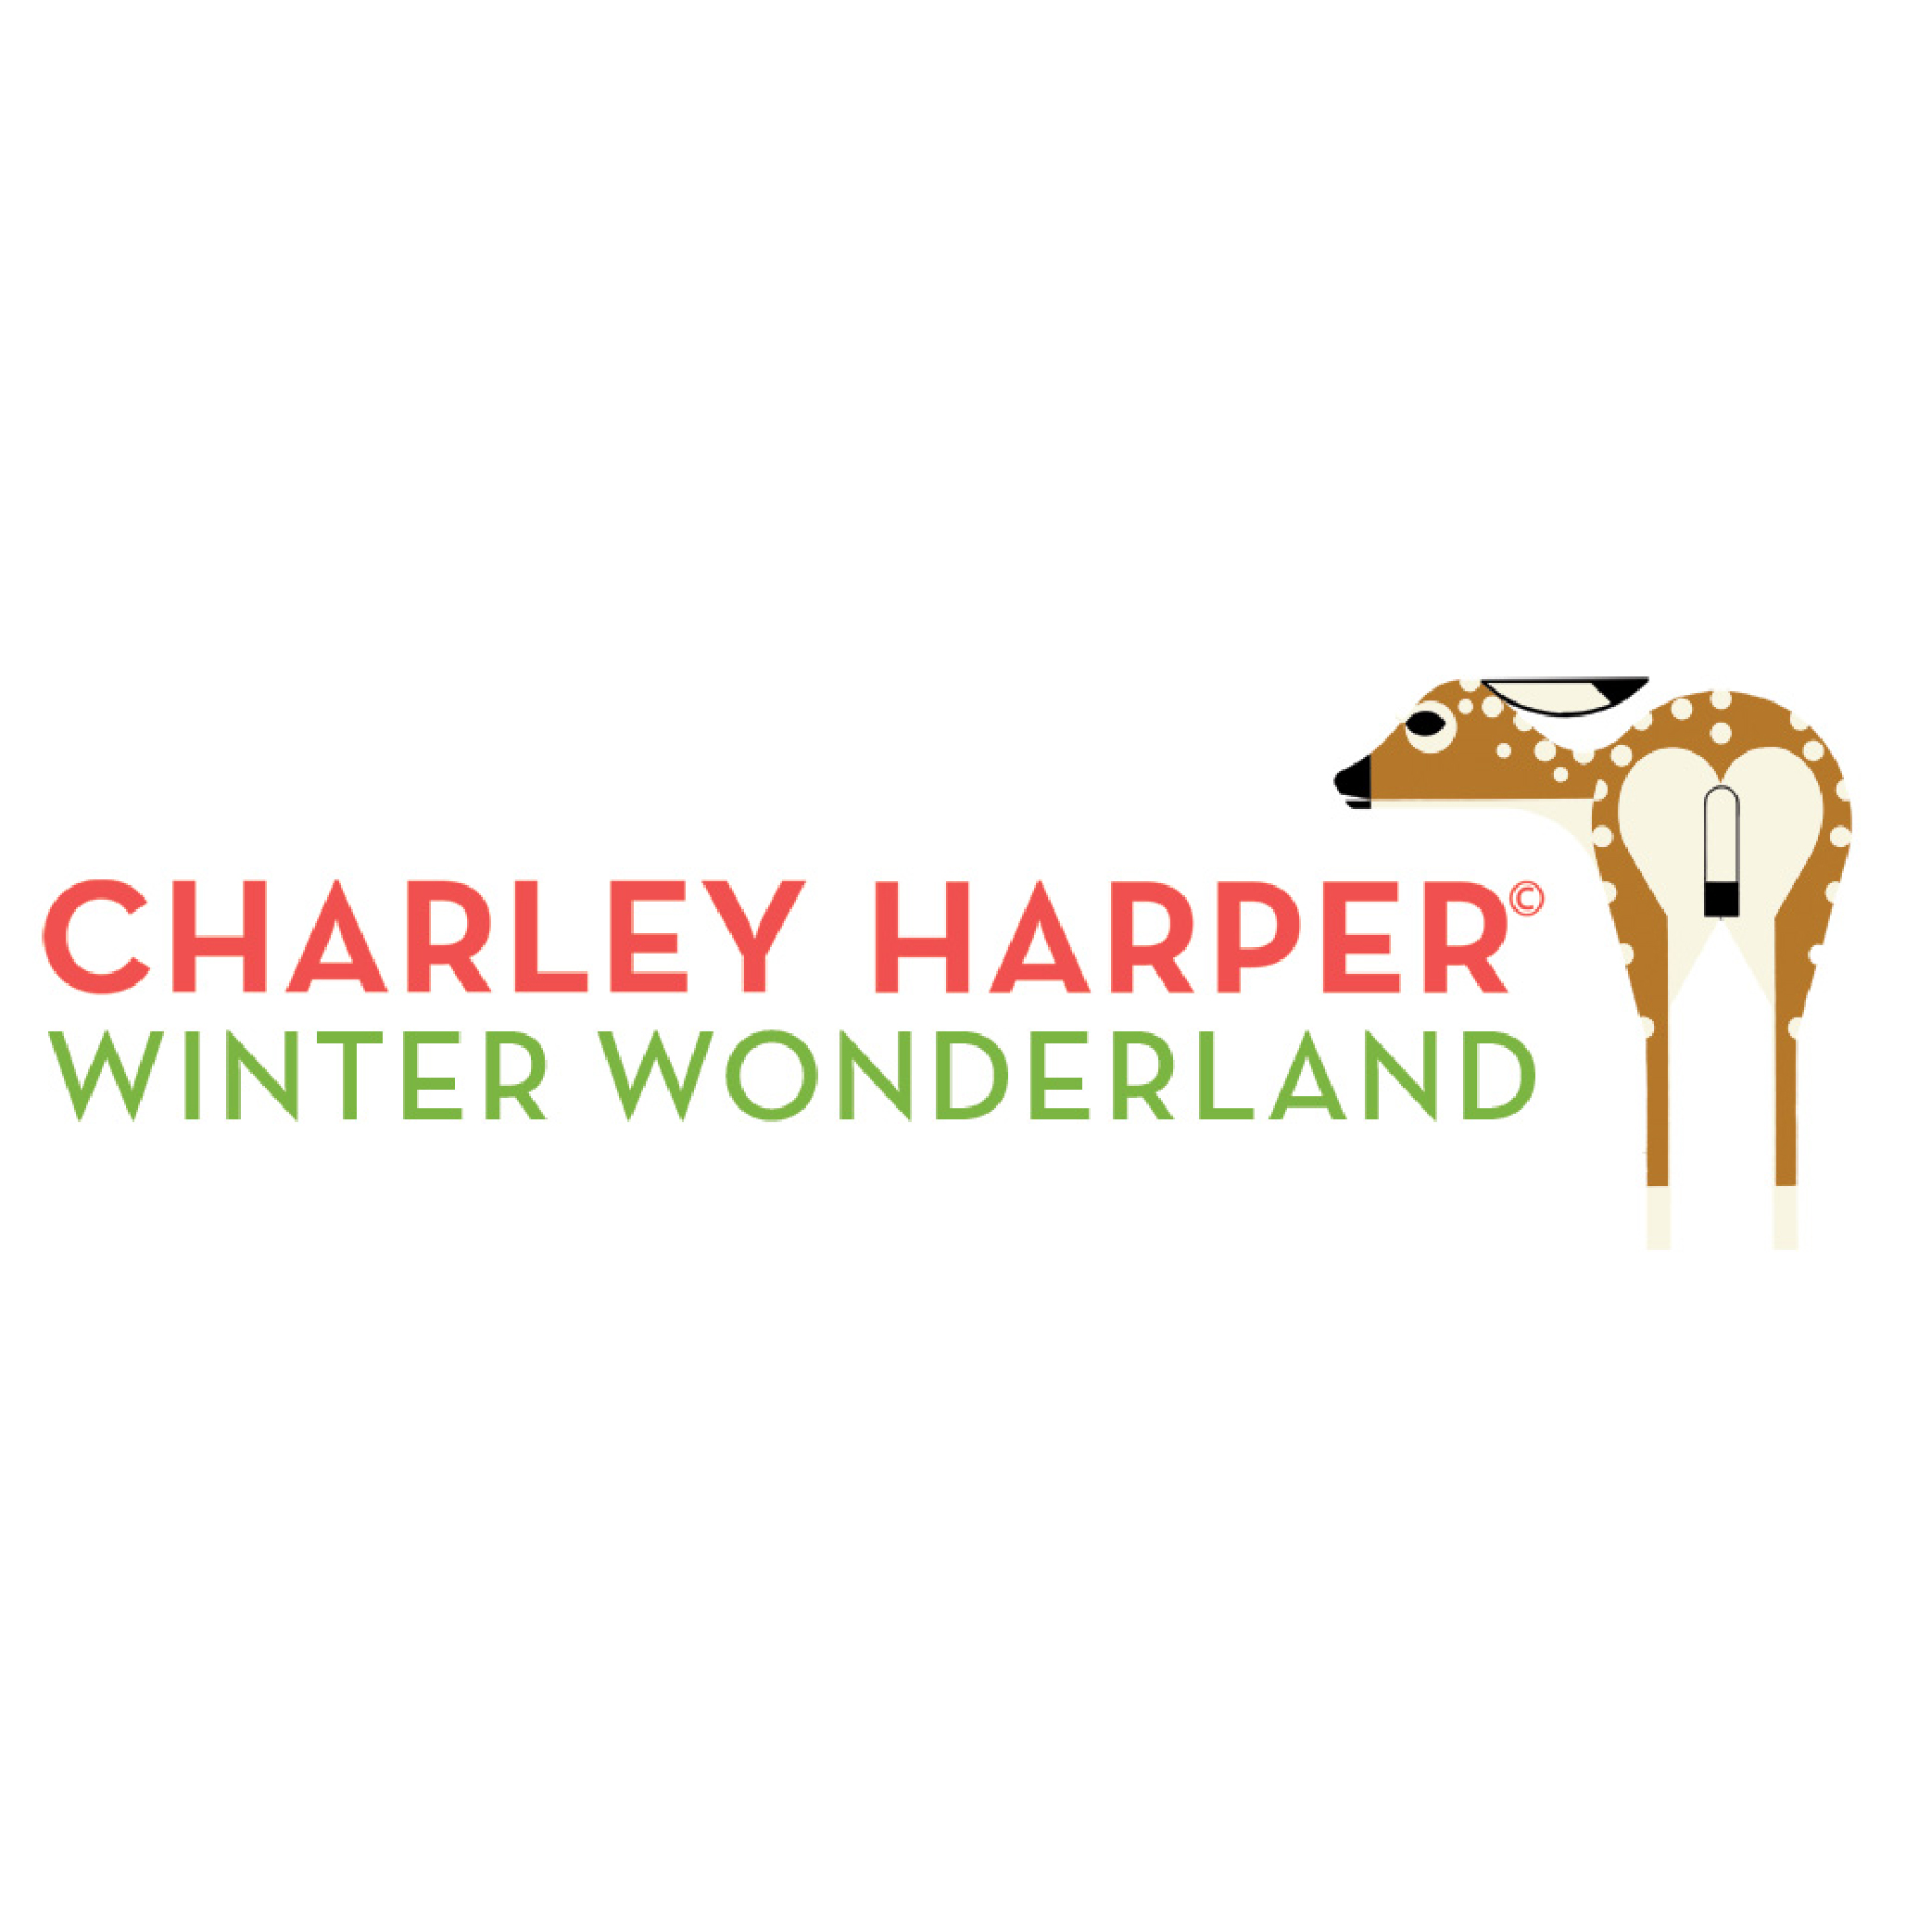 Charley Harper Winter Wonderland Swatch Pack